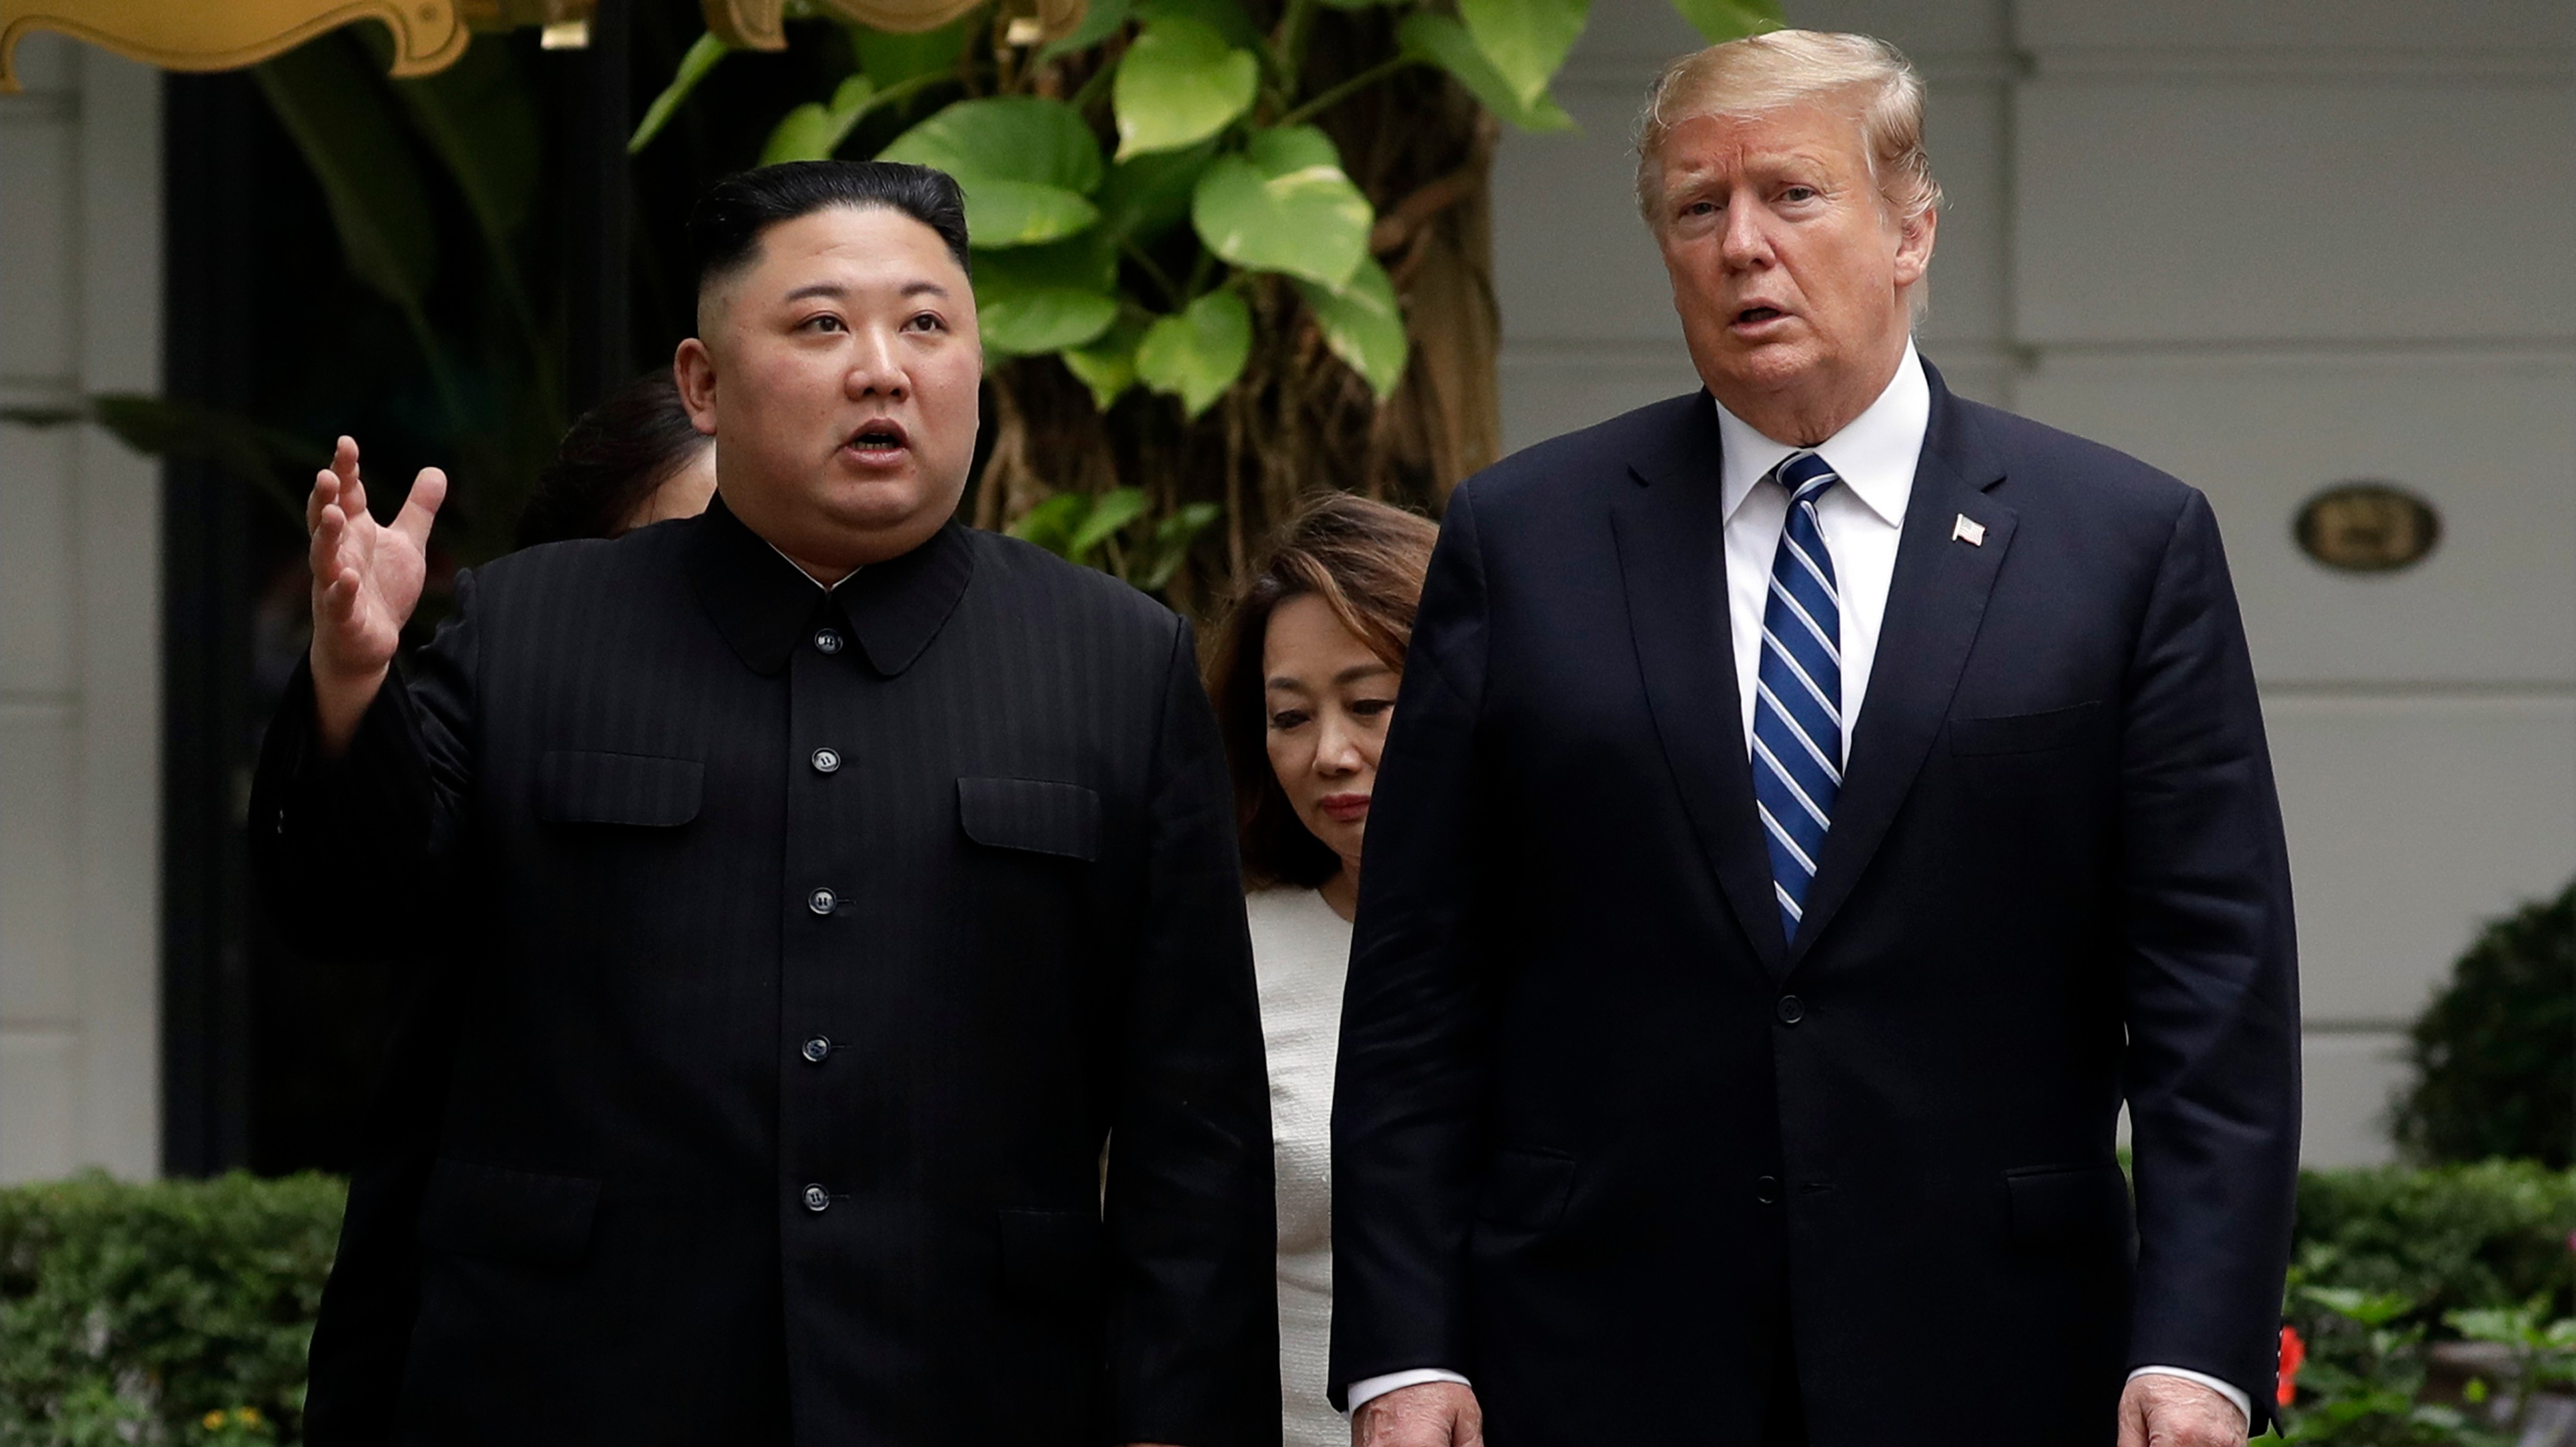 South Korea: Trump and Kim Are Ready for Another Summit